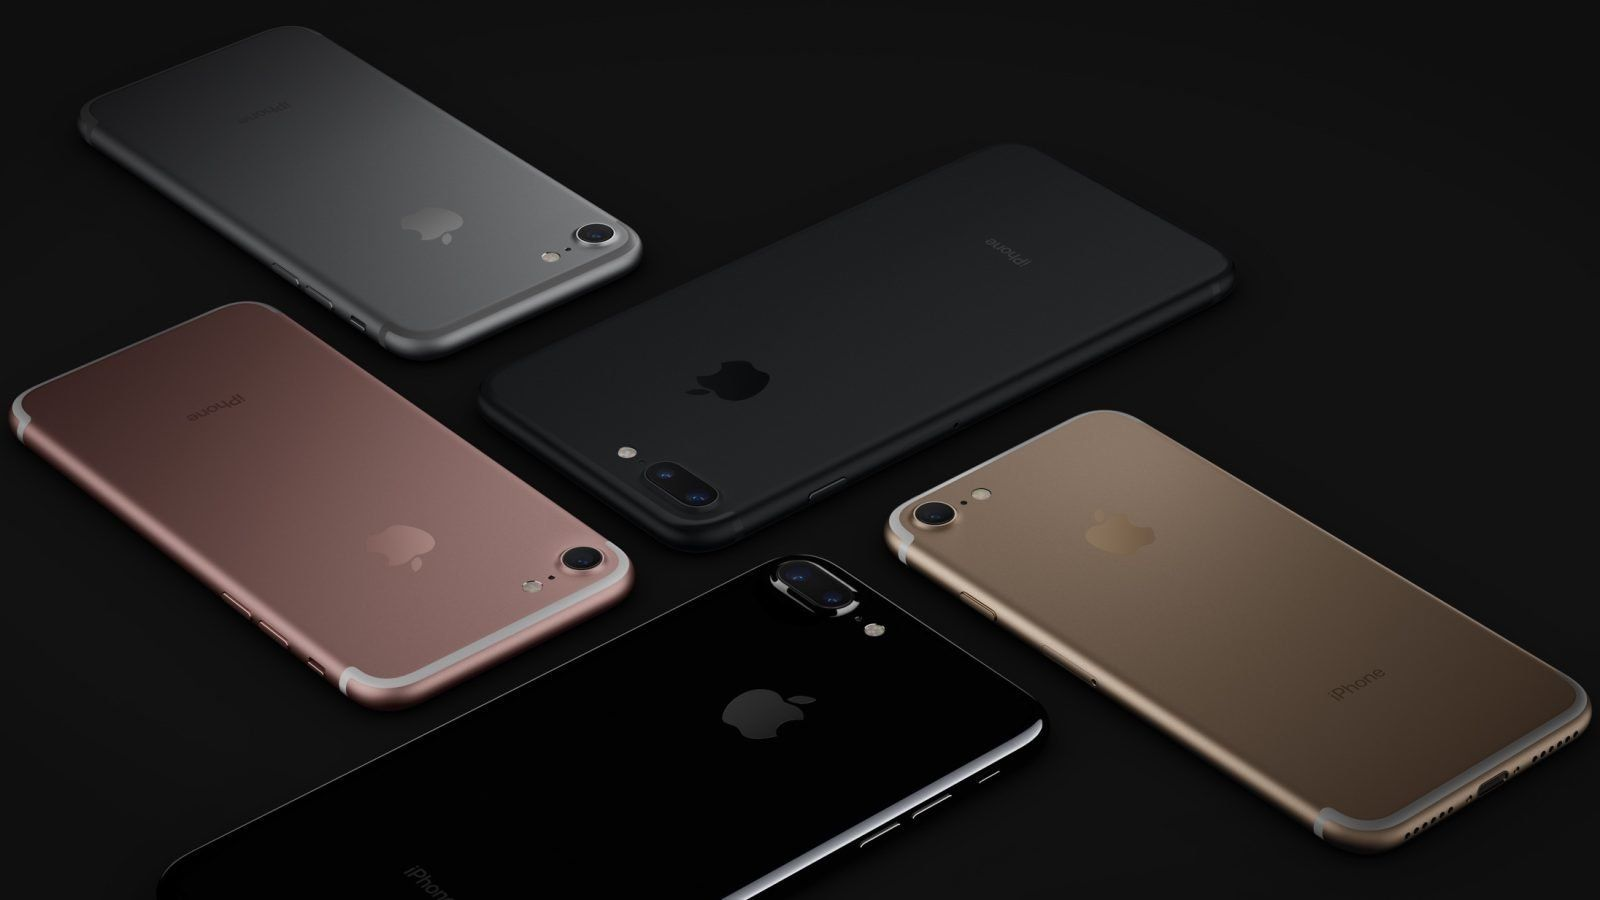 Want An iPhone 7 With A Headphone Jack? Here's How To Get